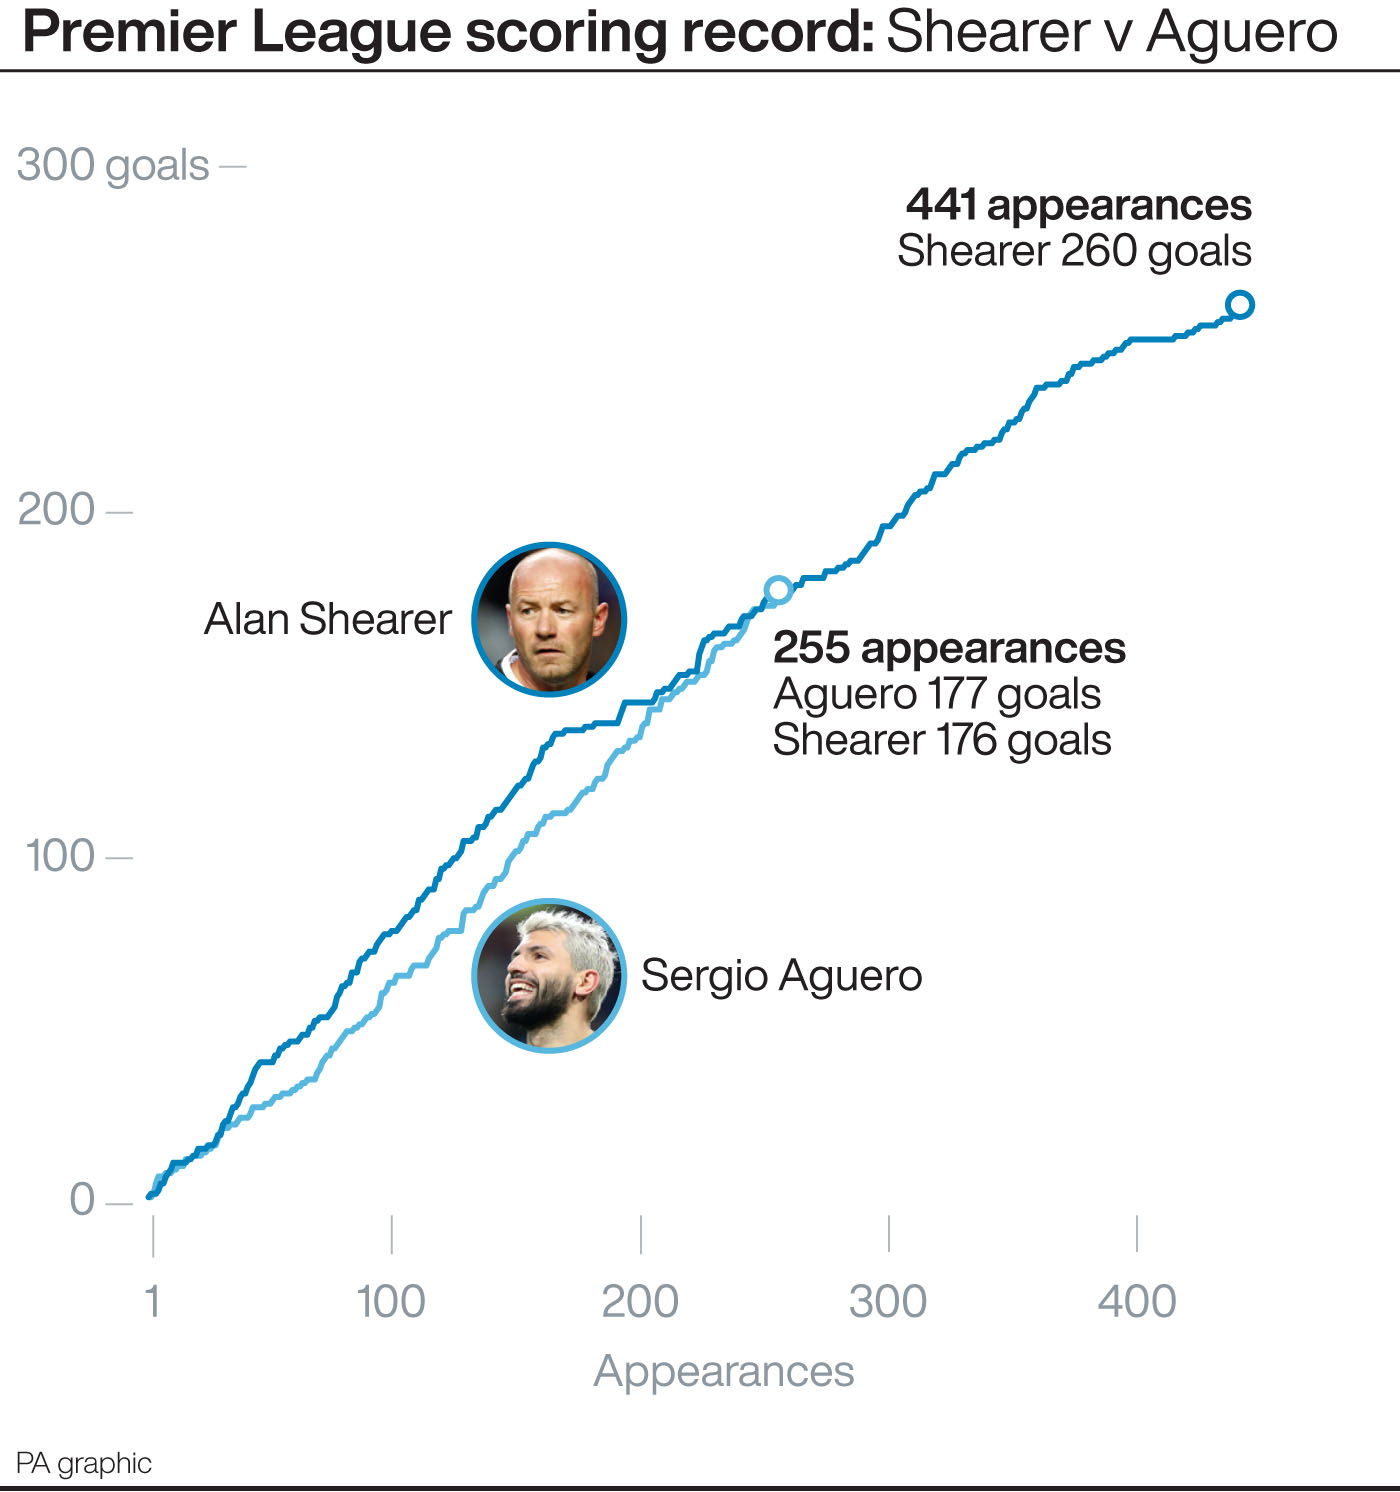 Sergio Aguero v Alan Shearer: Premier League scoring record